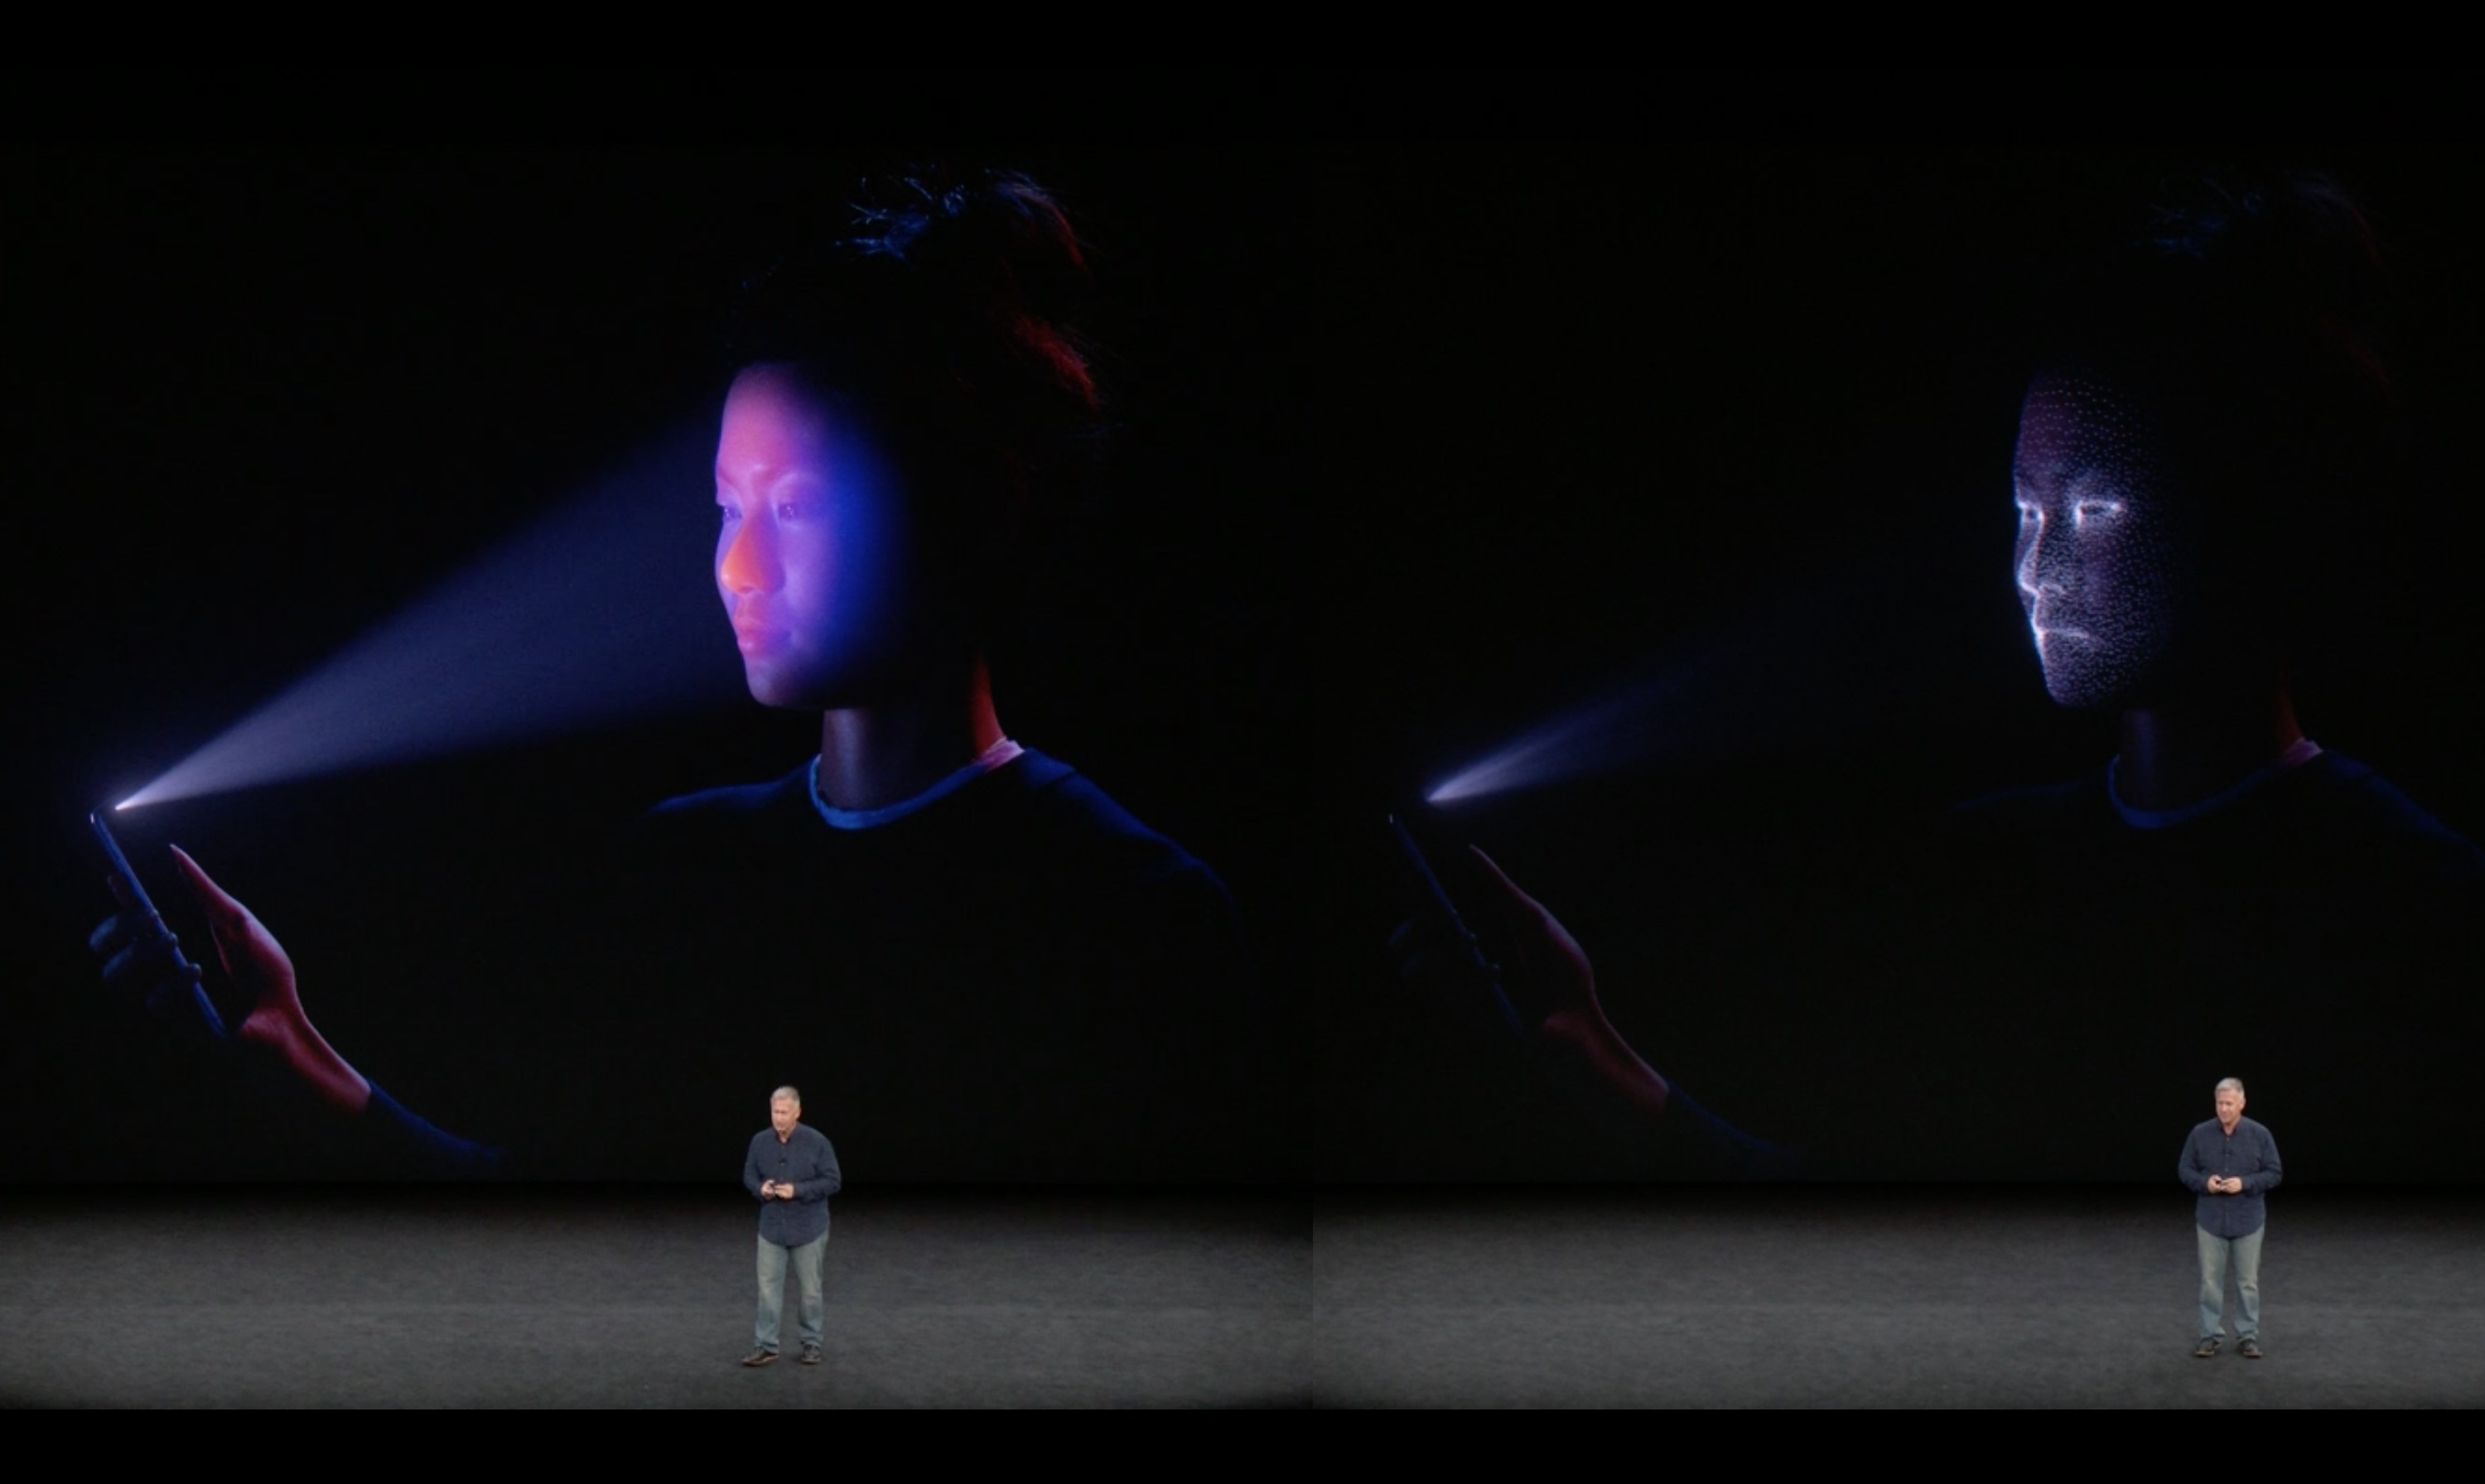 Iphone X Basically Has A Kinect On The Front To Enable Face Id Fluke8217s Five New Infrared Cameras An Ir Sensitive Camera Watches How Those Dots Are Distorted And Reflected Your Producing Detailed 3d Mesh